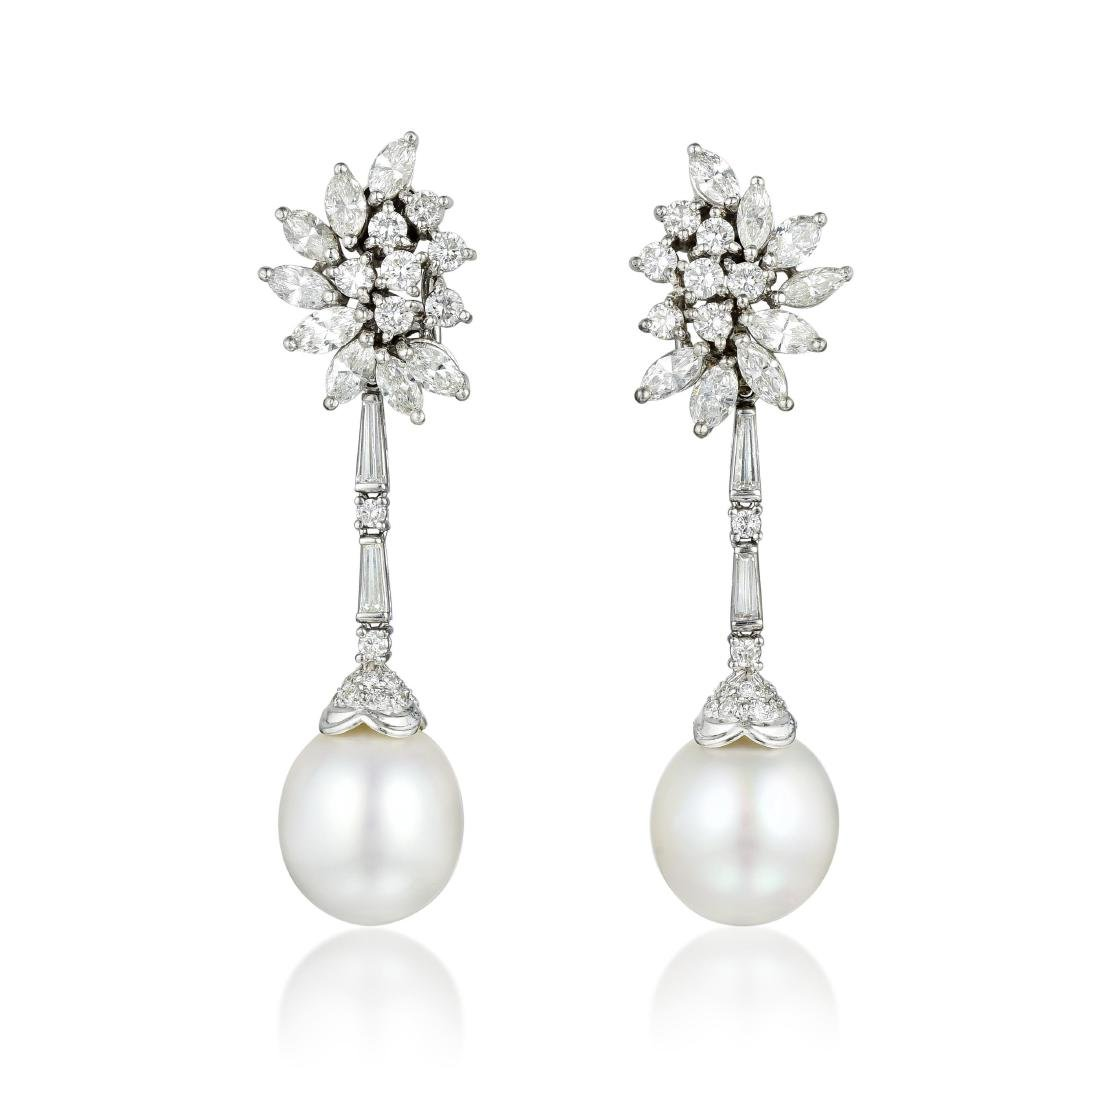 A Pair of Diamond and Pearl Drop Day/Night Earrings